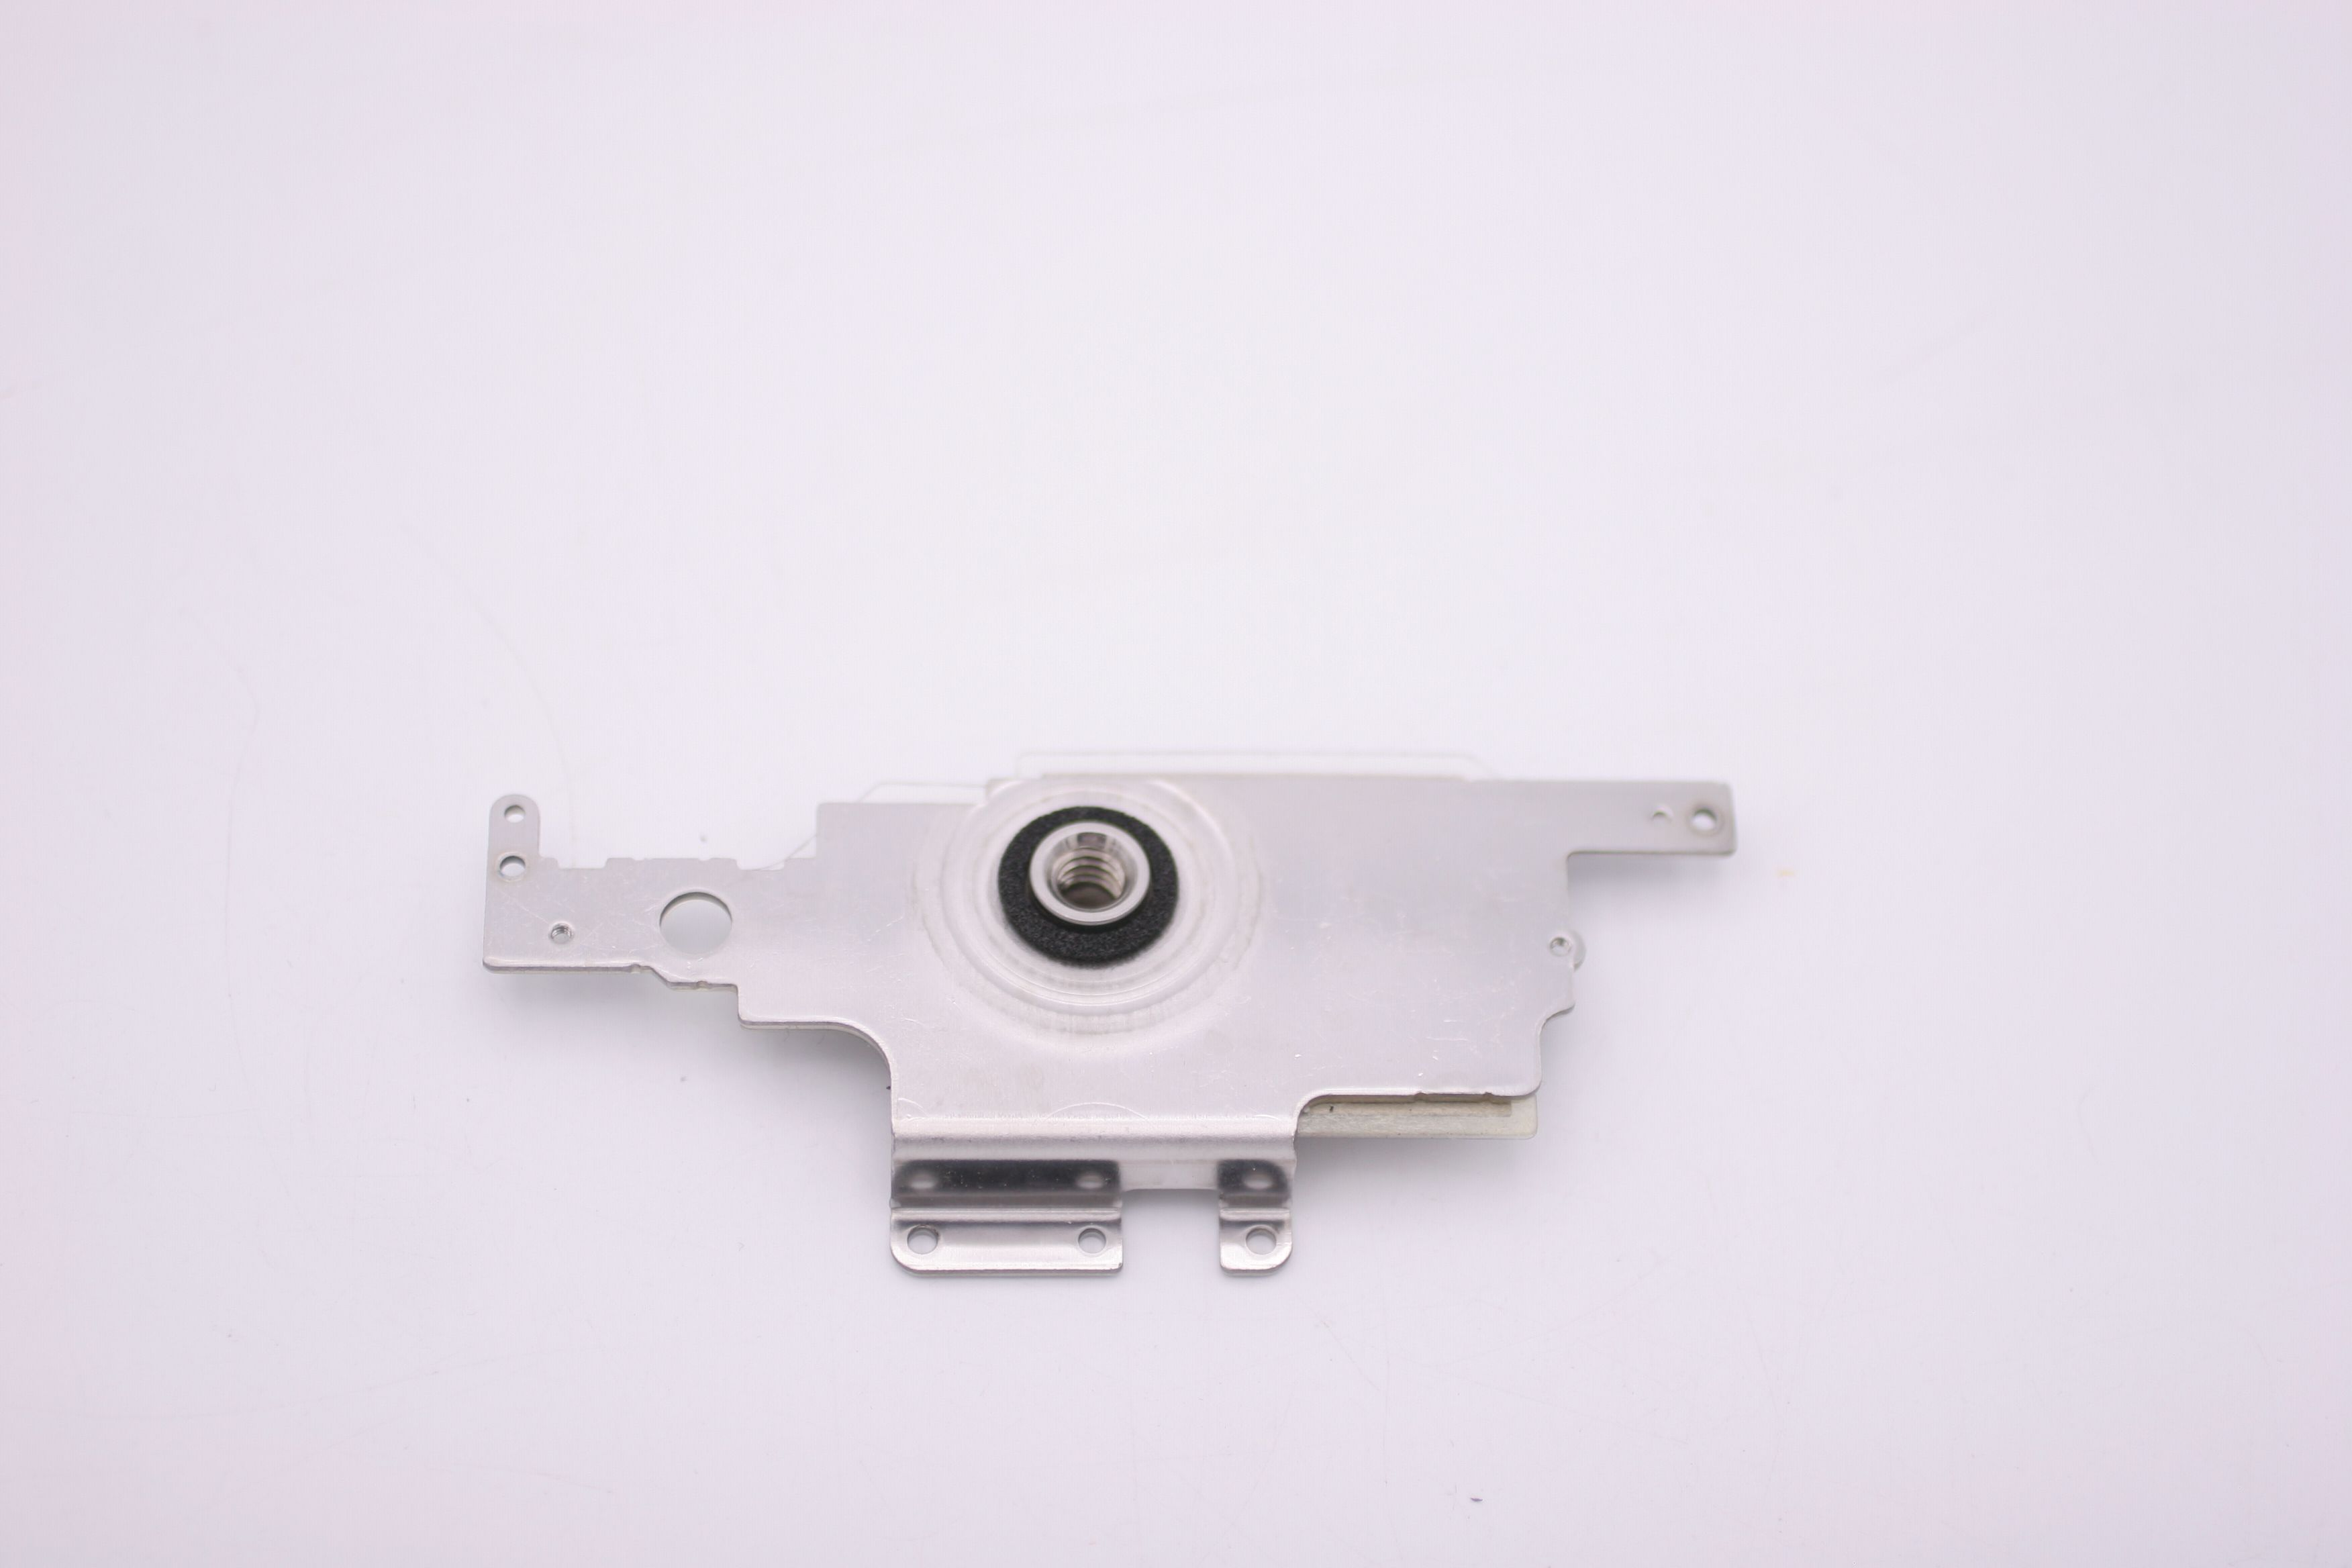 Camera Repair Parts Replacement Bottom Plate for Canon EOS 40D Digital Camera